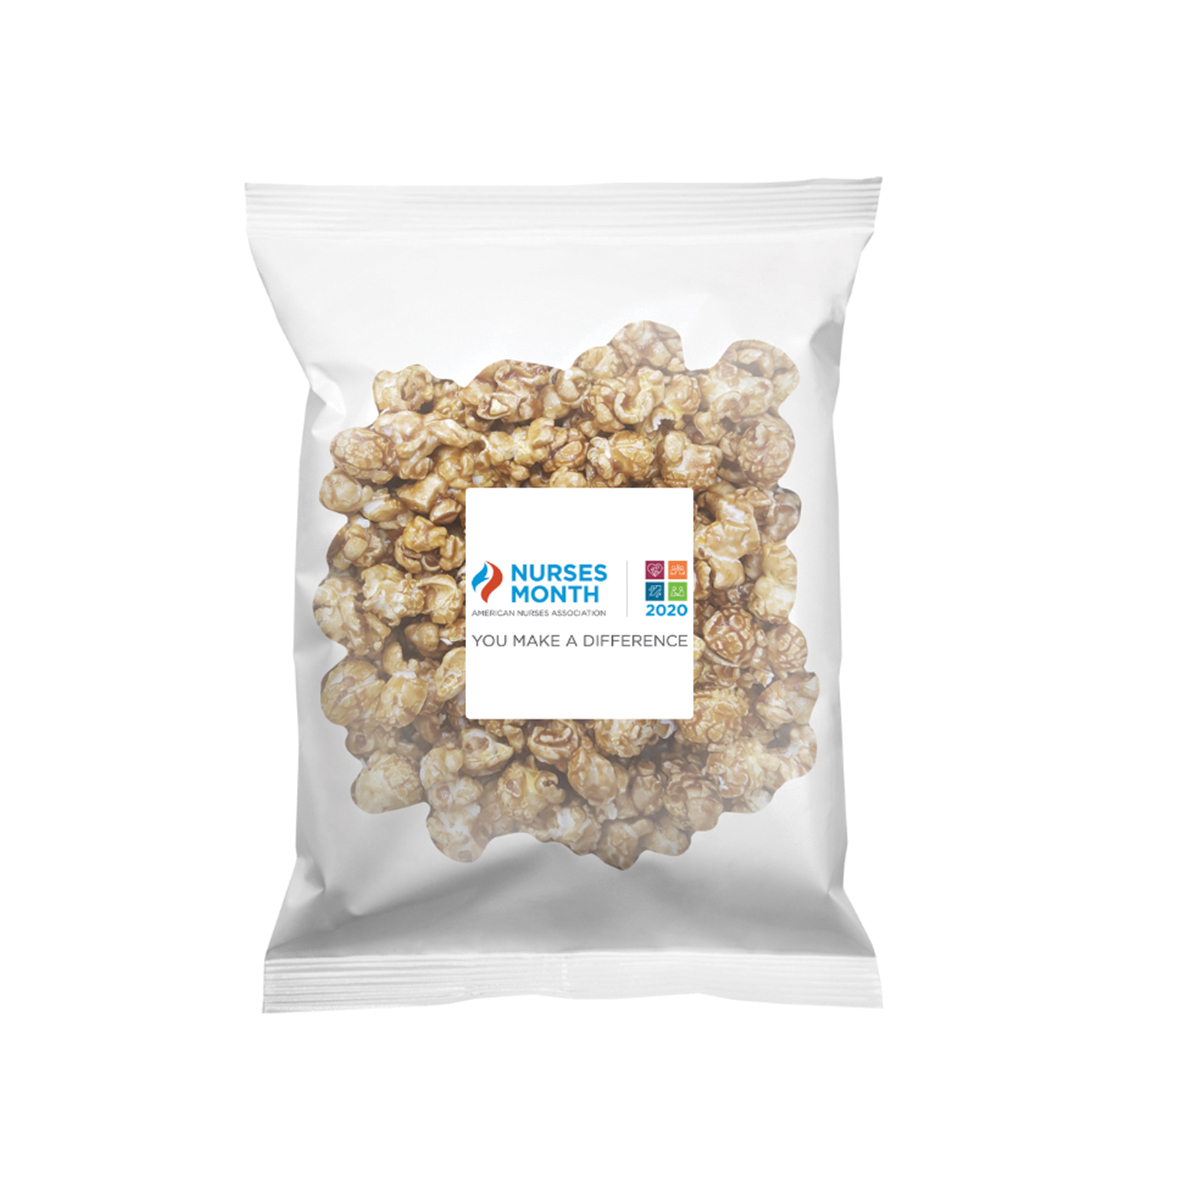 Nurses Month Kettle Corn Snack Bag